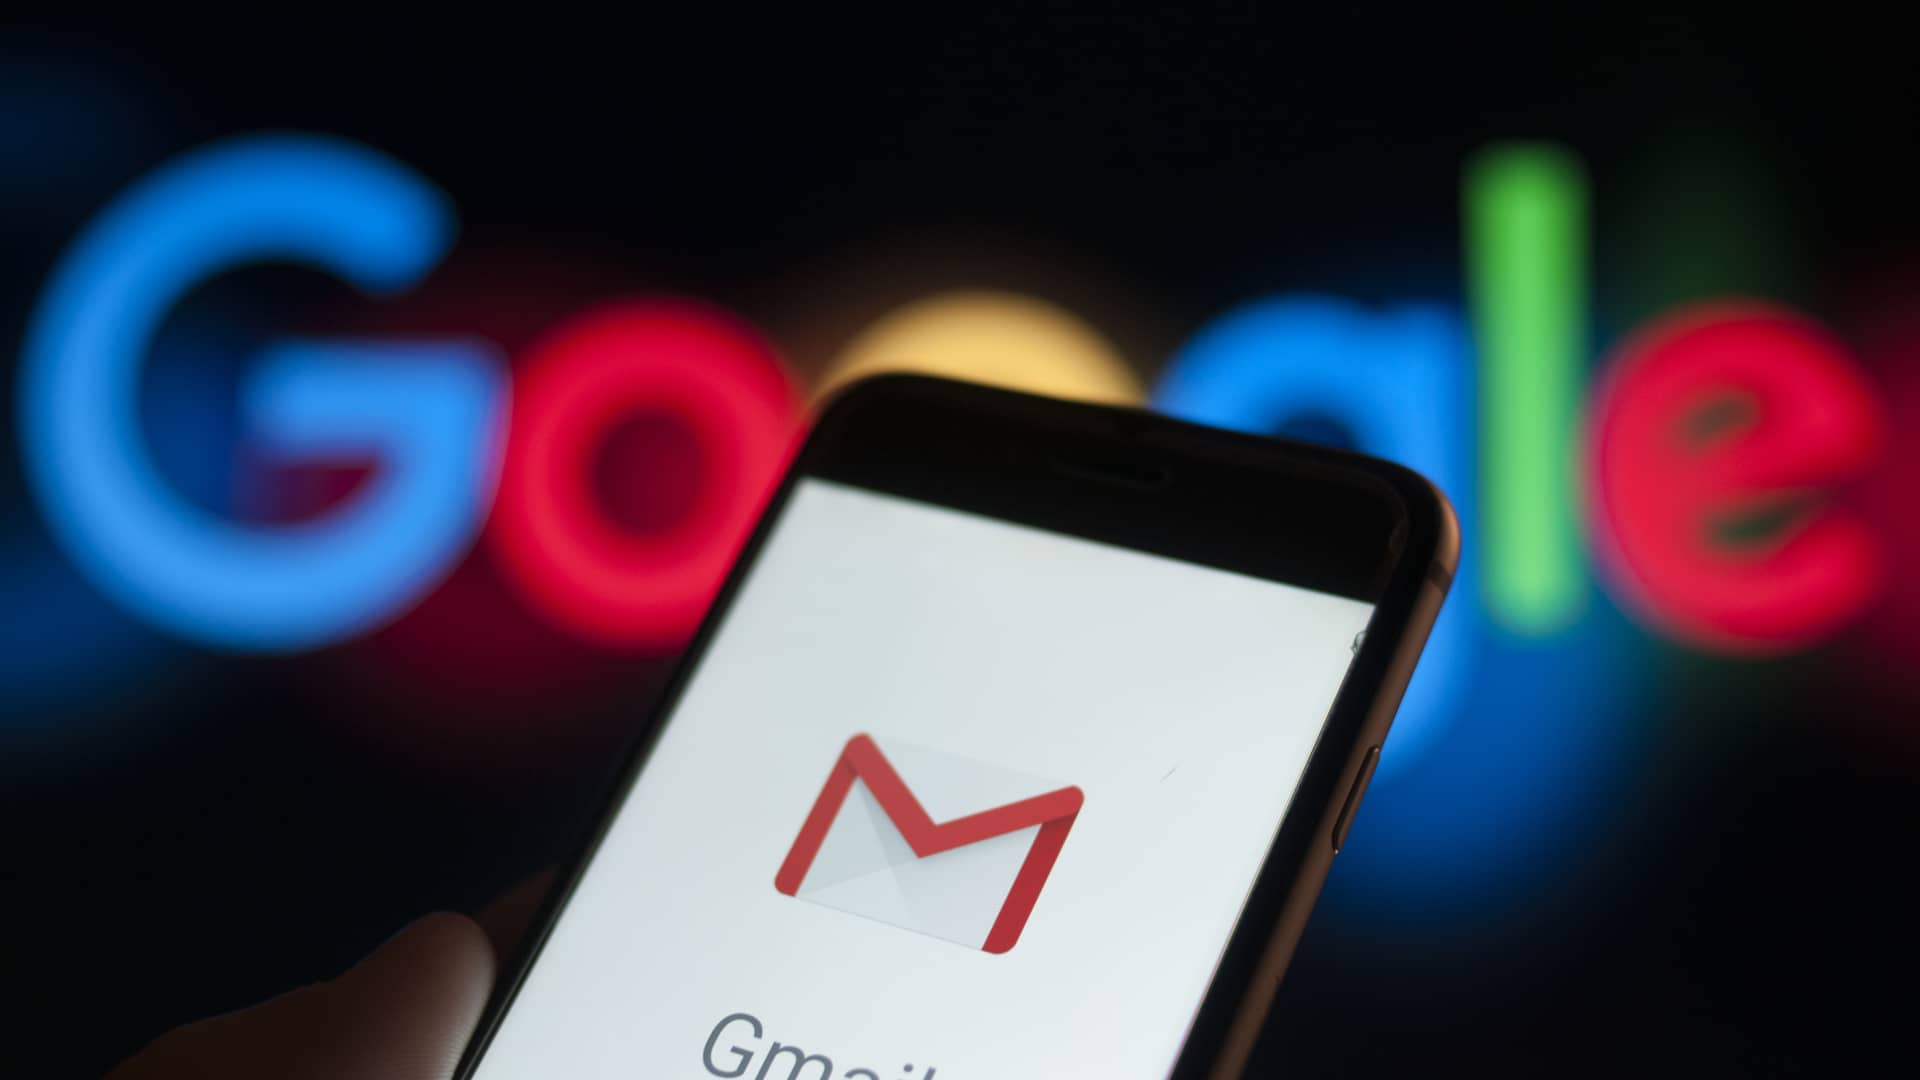 The Gmail email application is seen on a portable device in this photo illustration on December 6, 2017. (Photo by Jaap Arriens/NurPhoto via Getty Images)